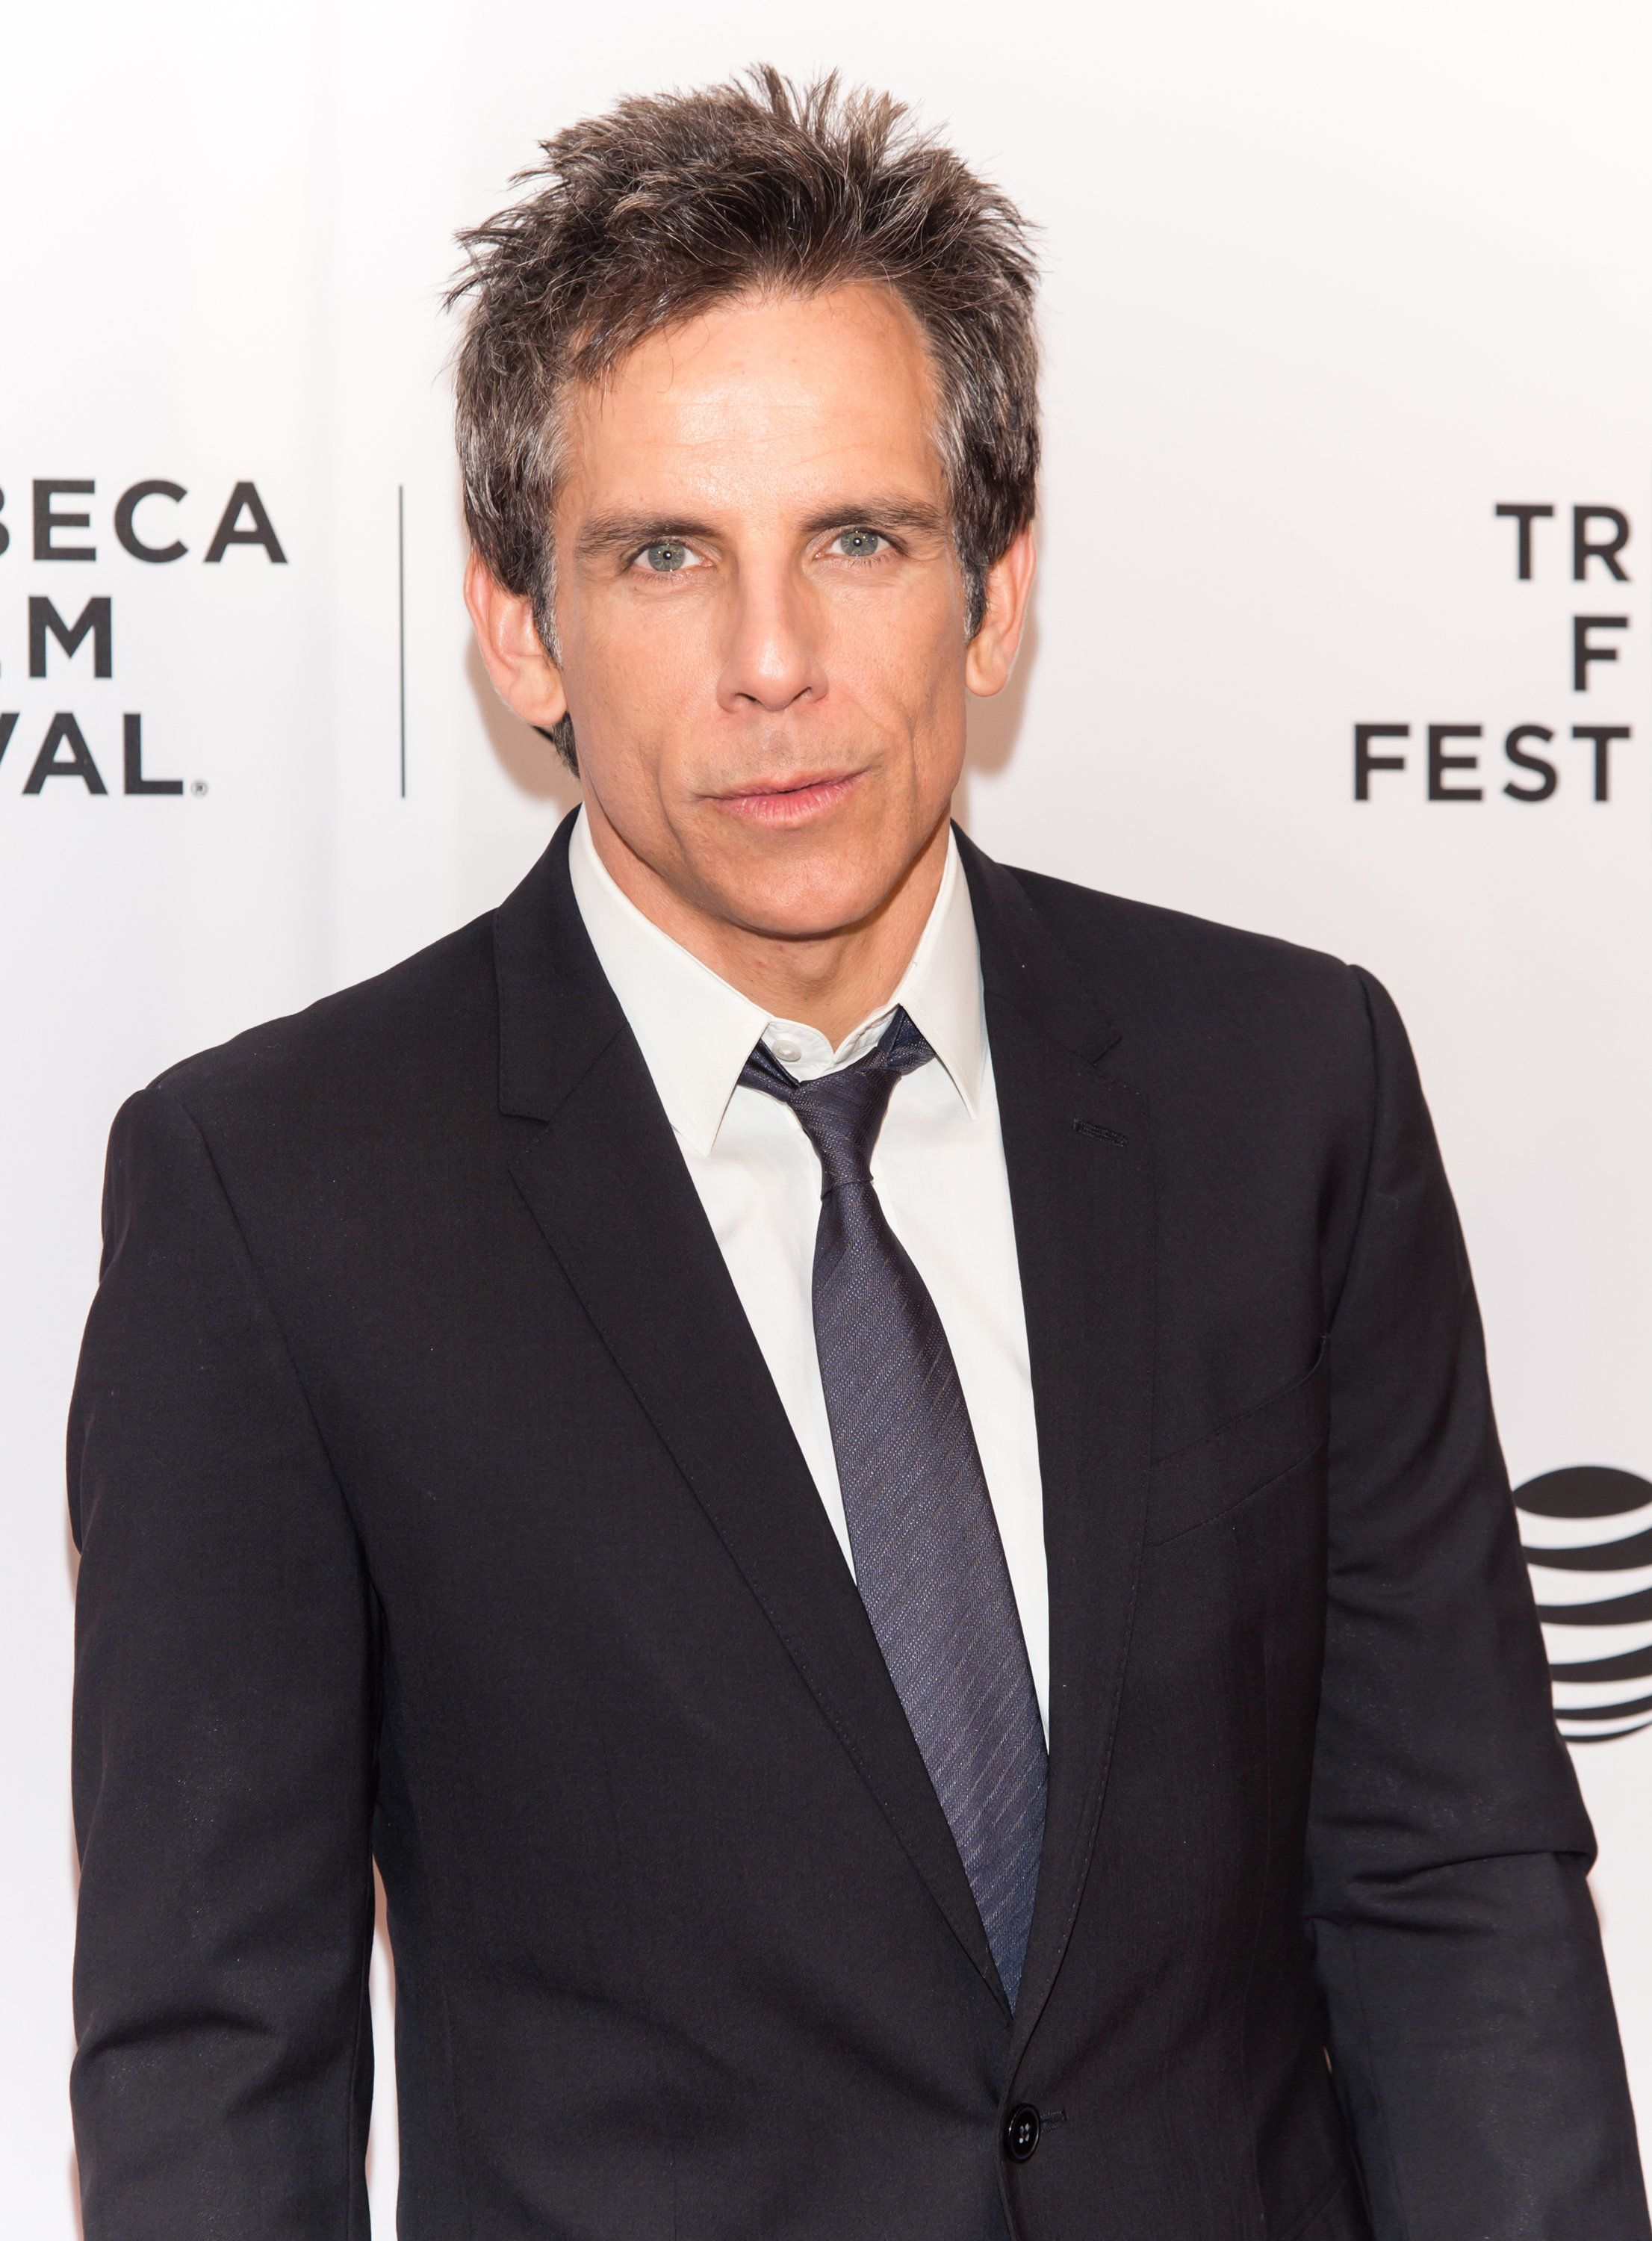 NEW YORK, NY - APRIL 15:  Actor, comedian, and filmmaker, Ben Stiller attends the 'Little Boxes' Premiere during 2016 Tribeca Film Festival at Chelsea Bow Tie Cinemas on April 15, 2016 in New York City.  (Photo by Gilbert Carrasquillo/FilmMagic)Actor  (Photo by Gilbert Carrasquillo/FilmMagic)